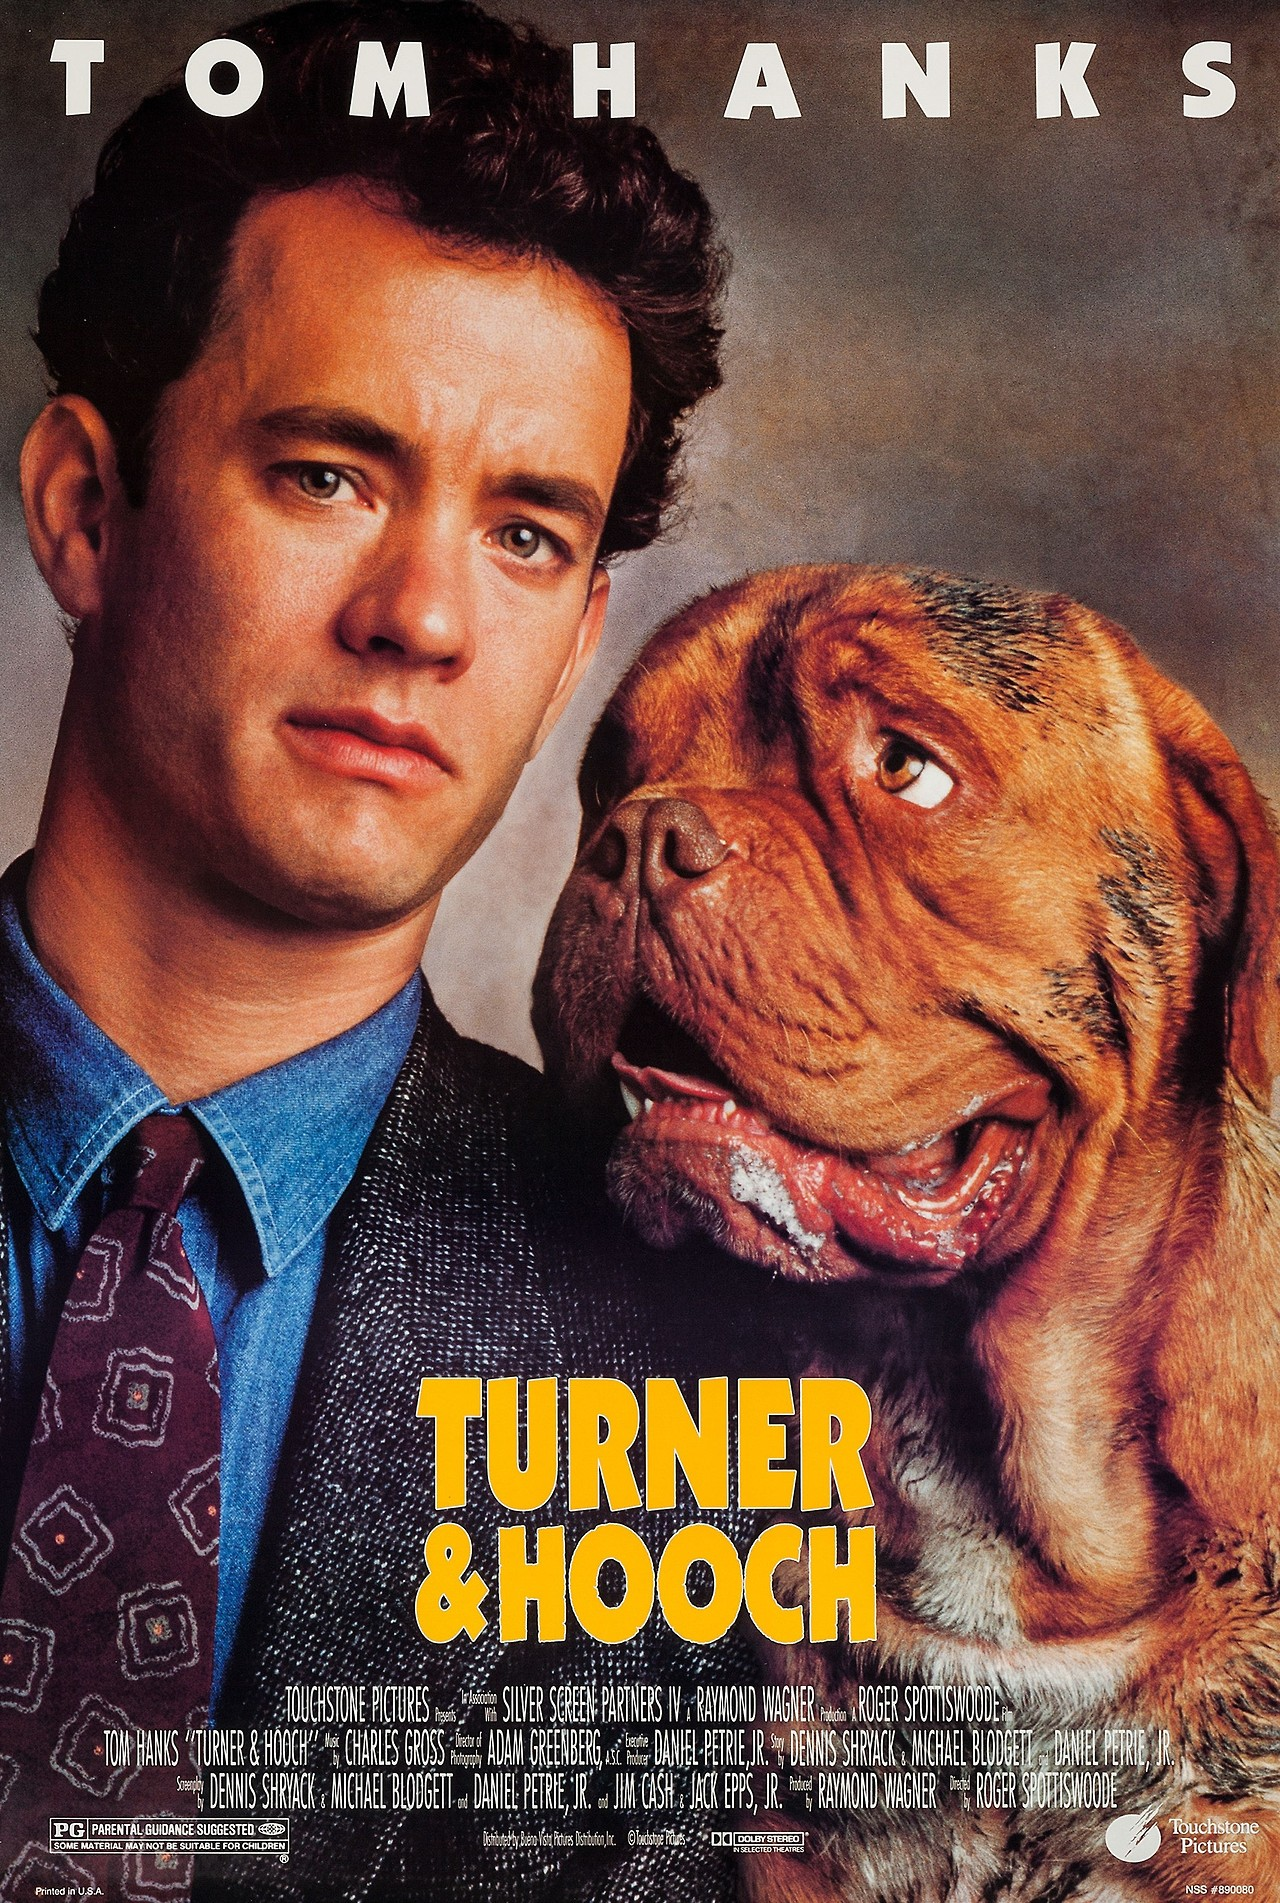 File:Turner and hooch poster.jpg